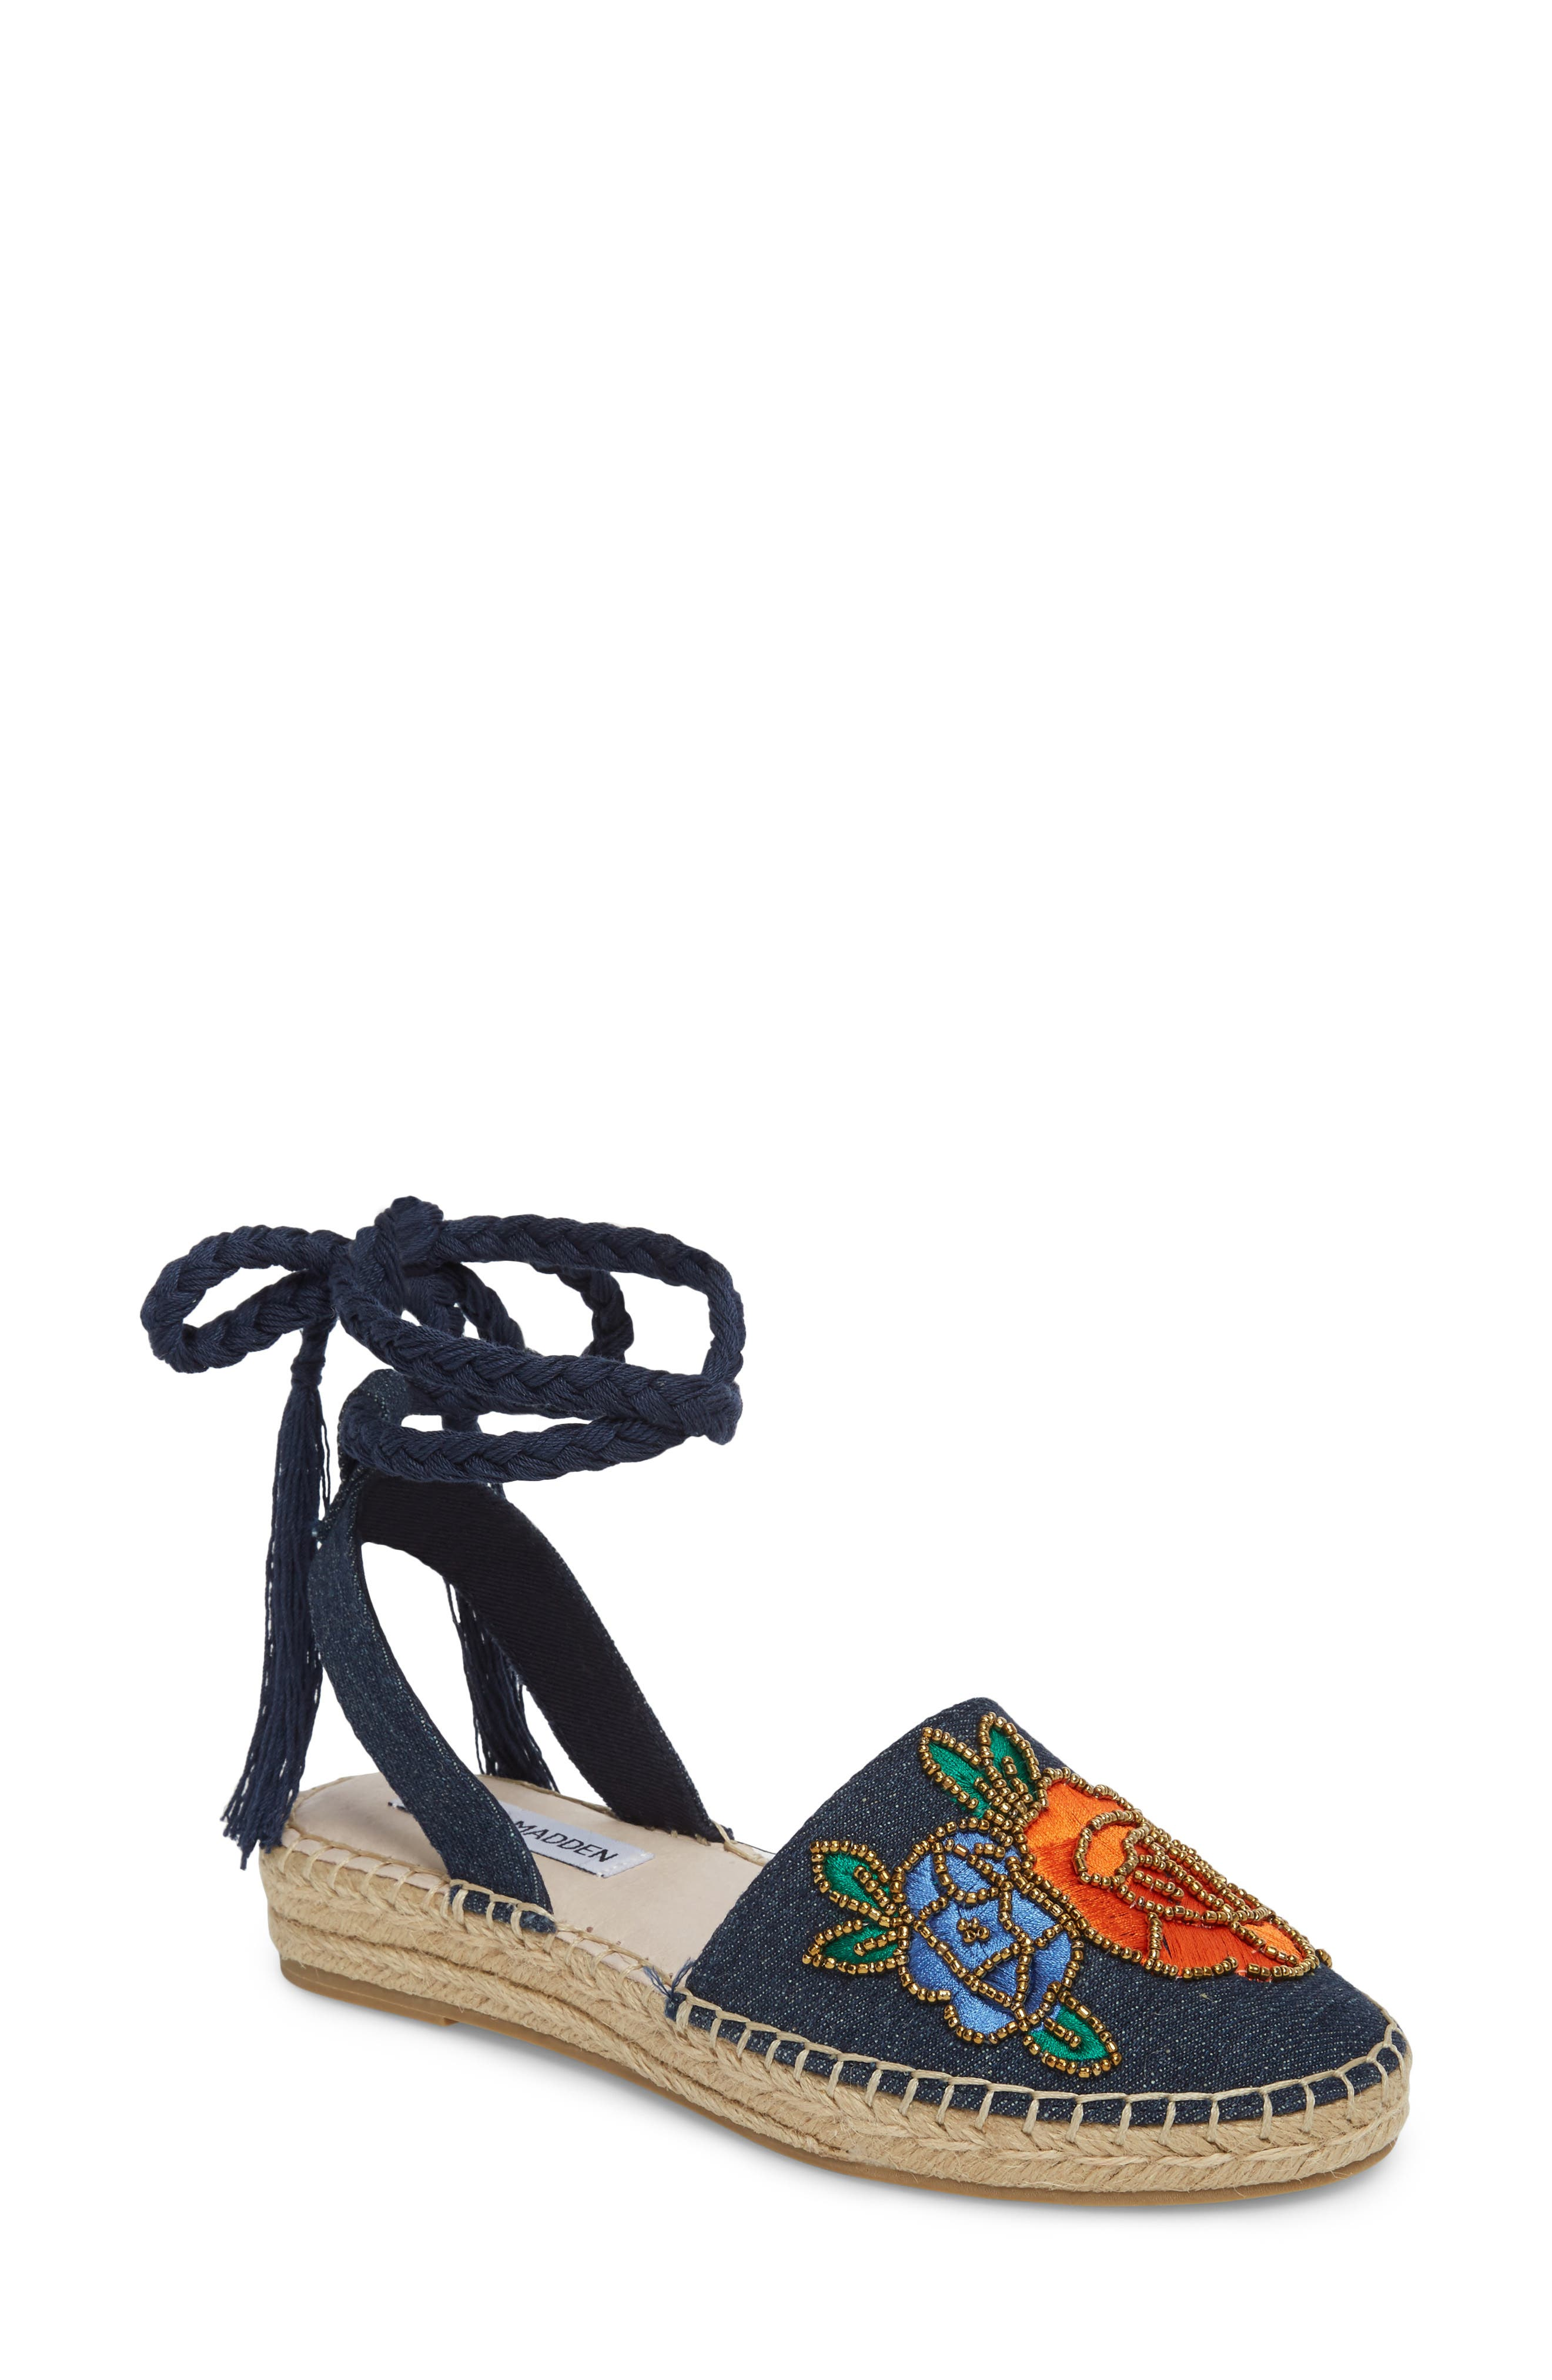 Alternate Image 1 Selected - Steve Madden Mesa Wraparound Espadrille (Women)